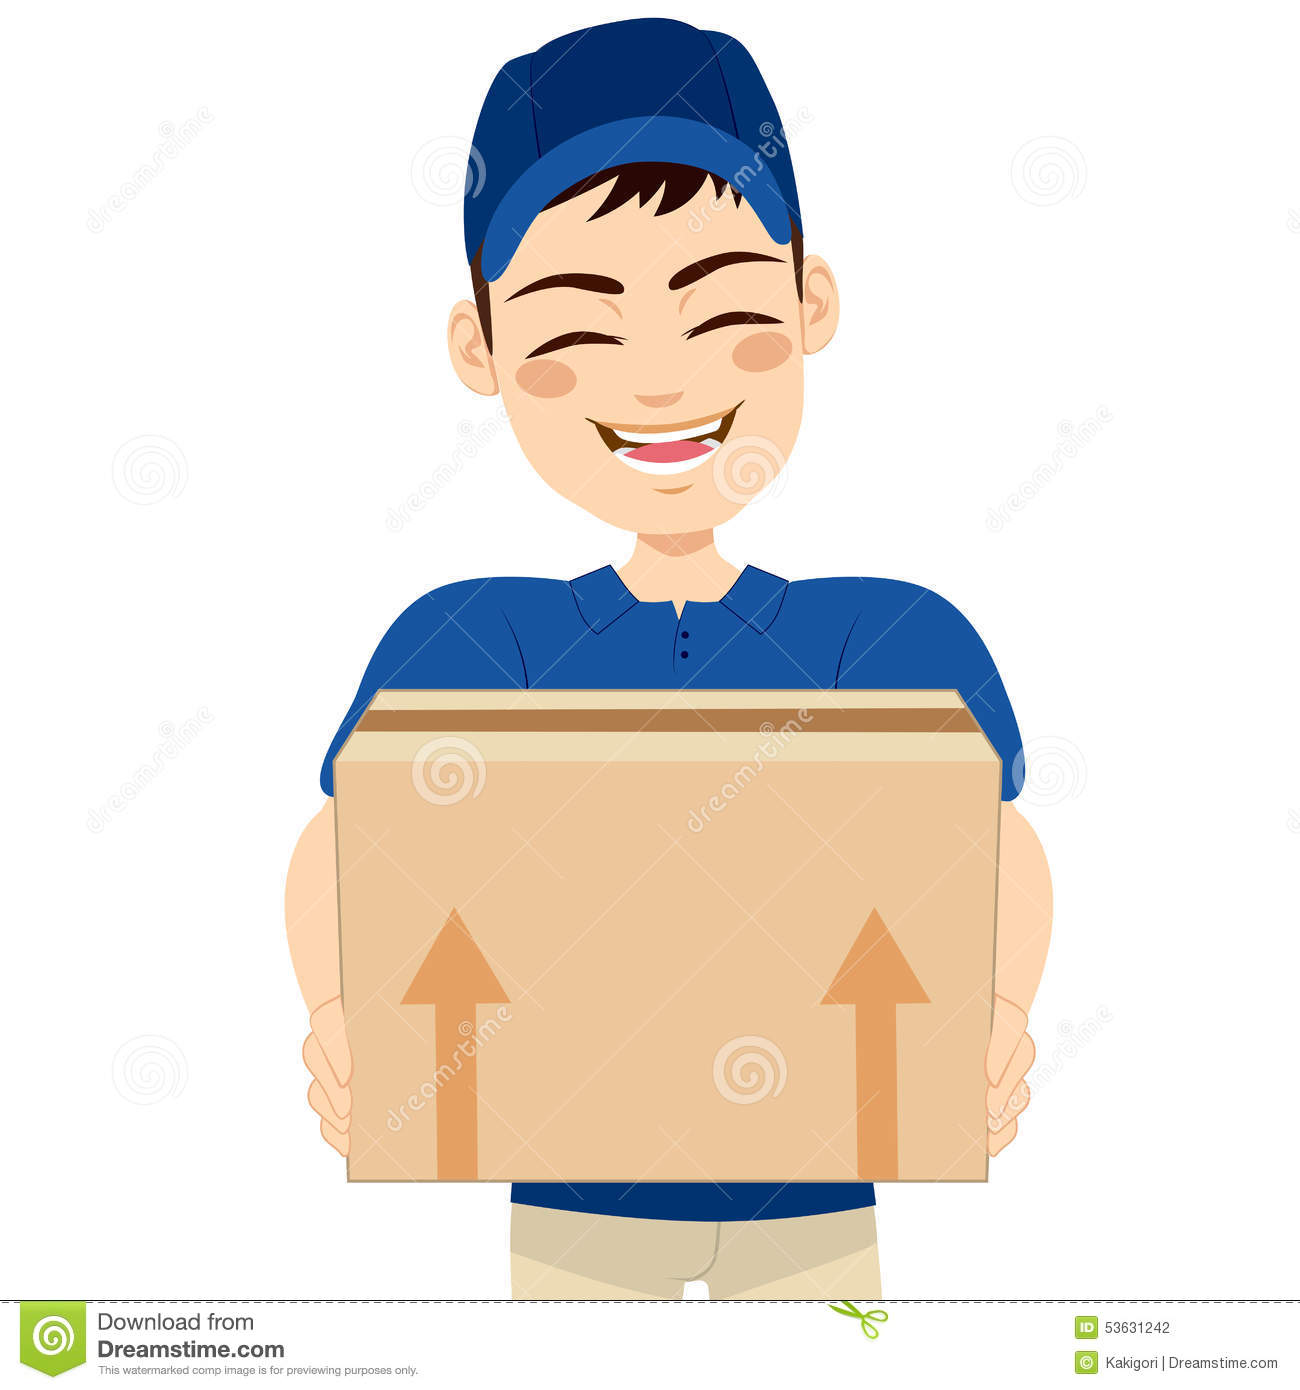 clipart delivery man - photo #25